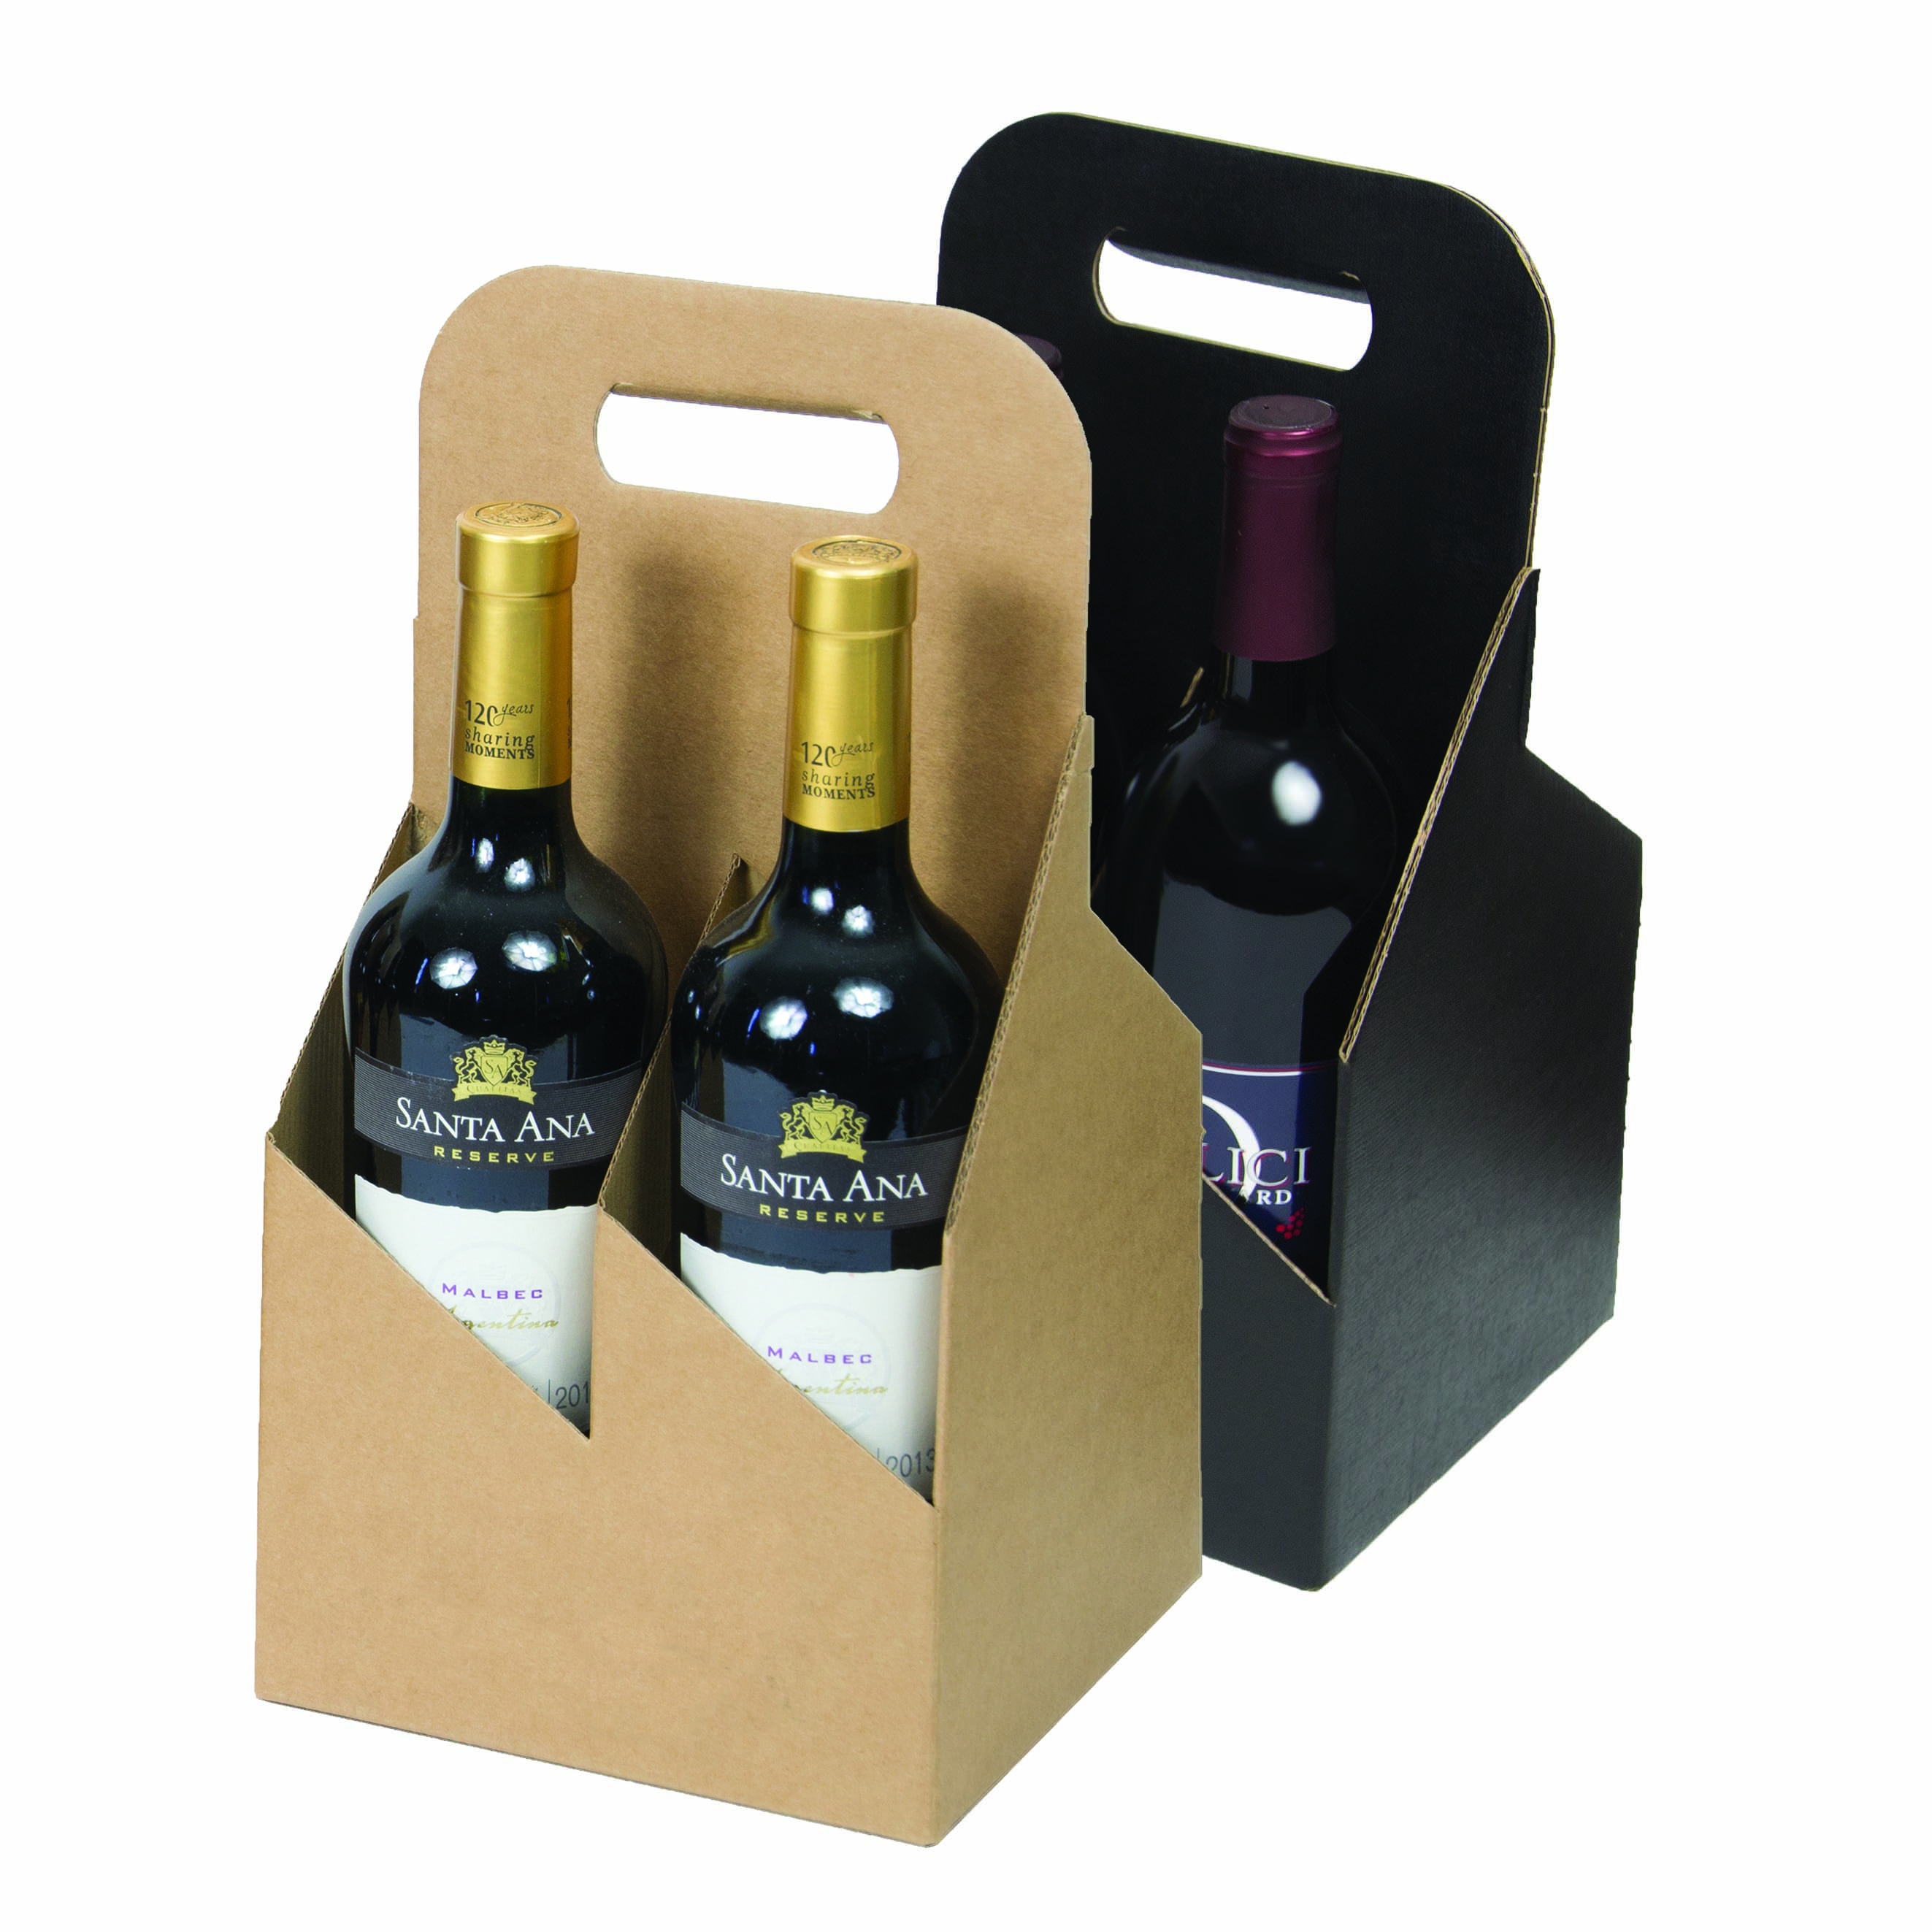 053afdb5c72b 4 Bottle 750 ml Wine Carrier Totes